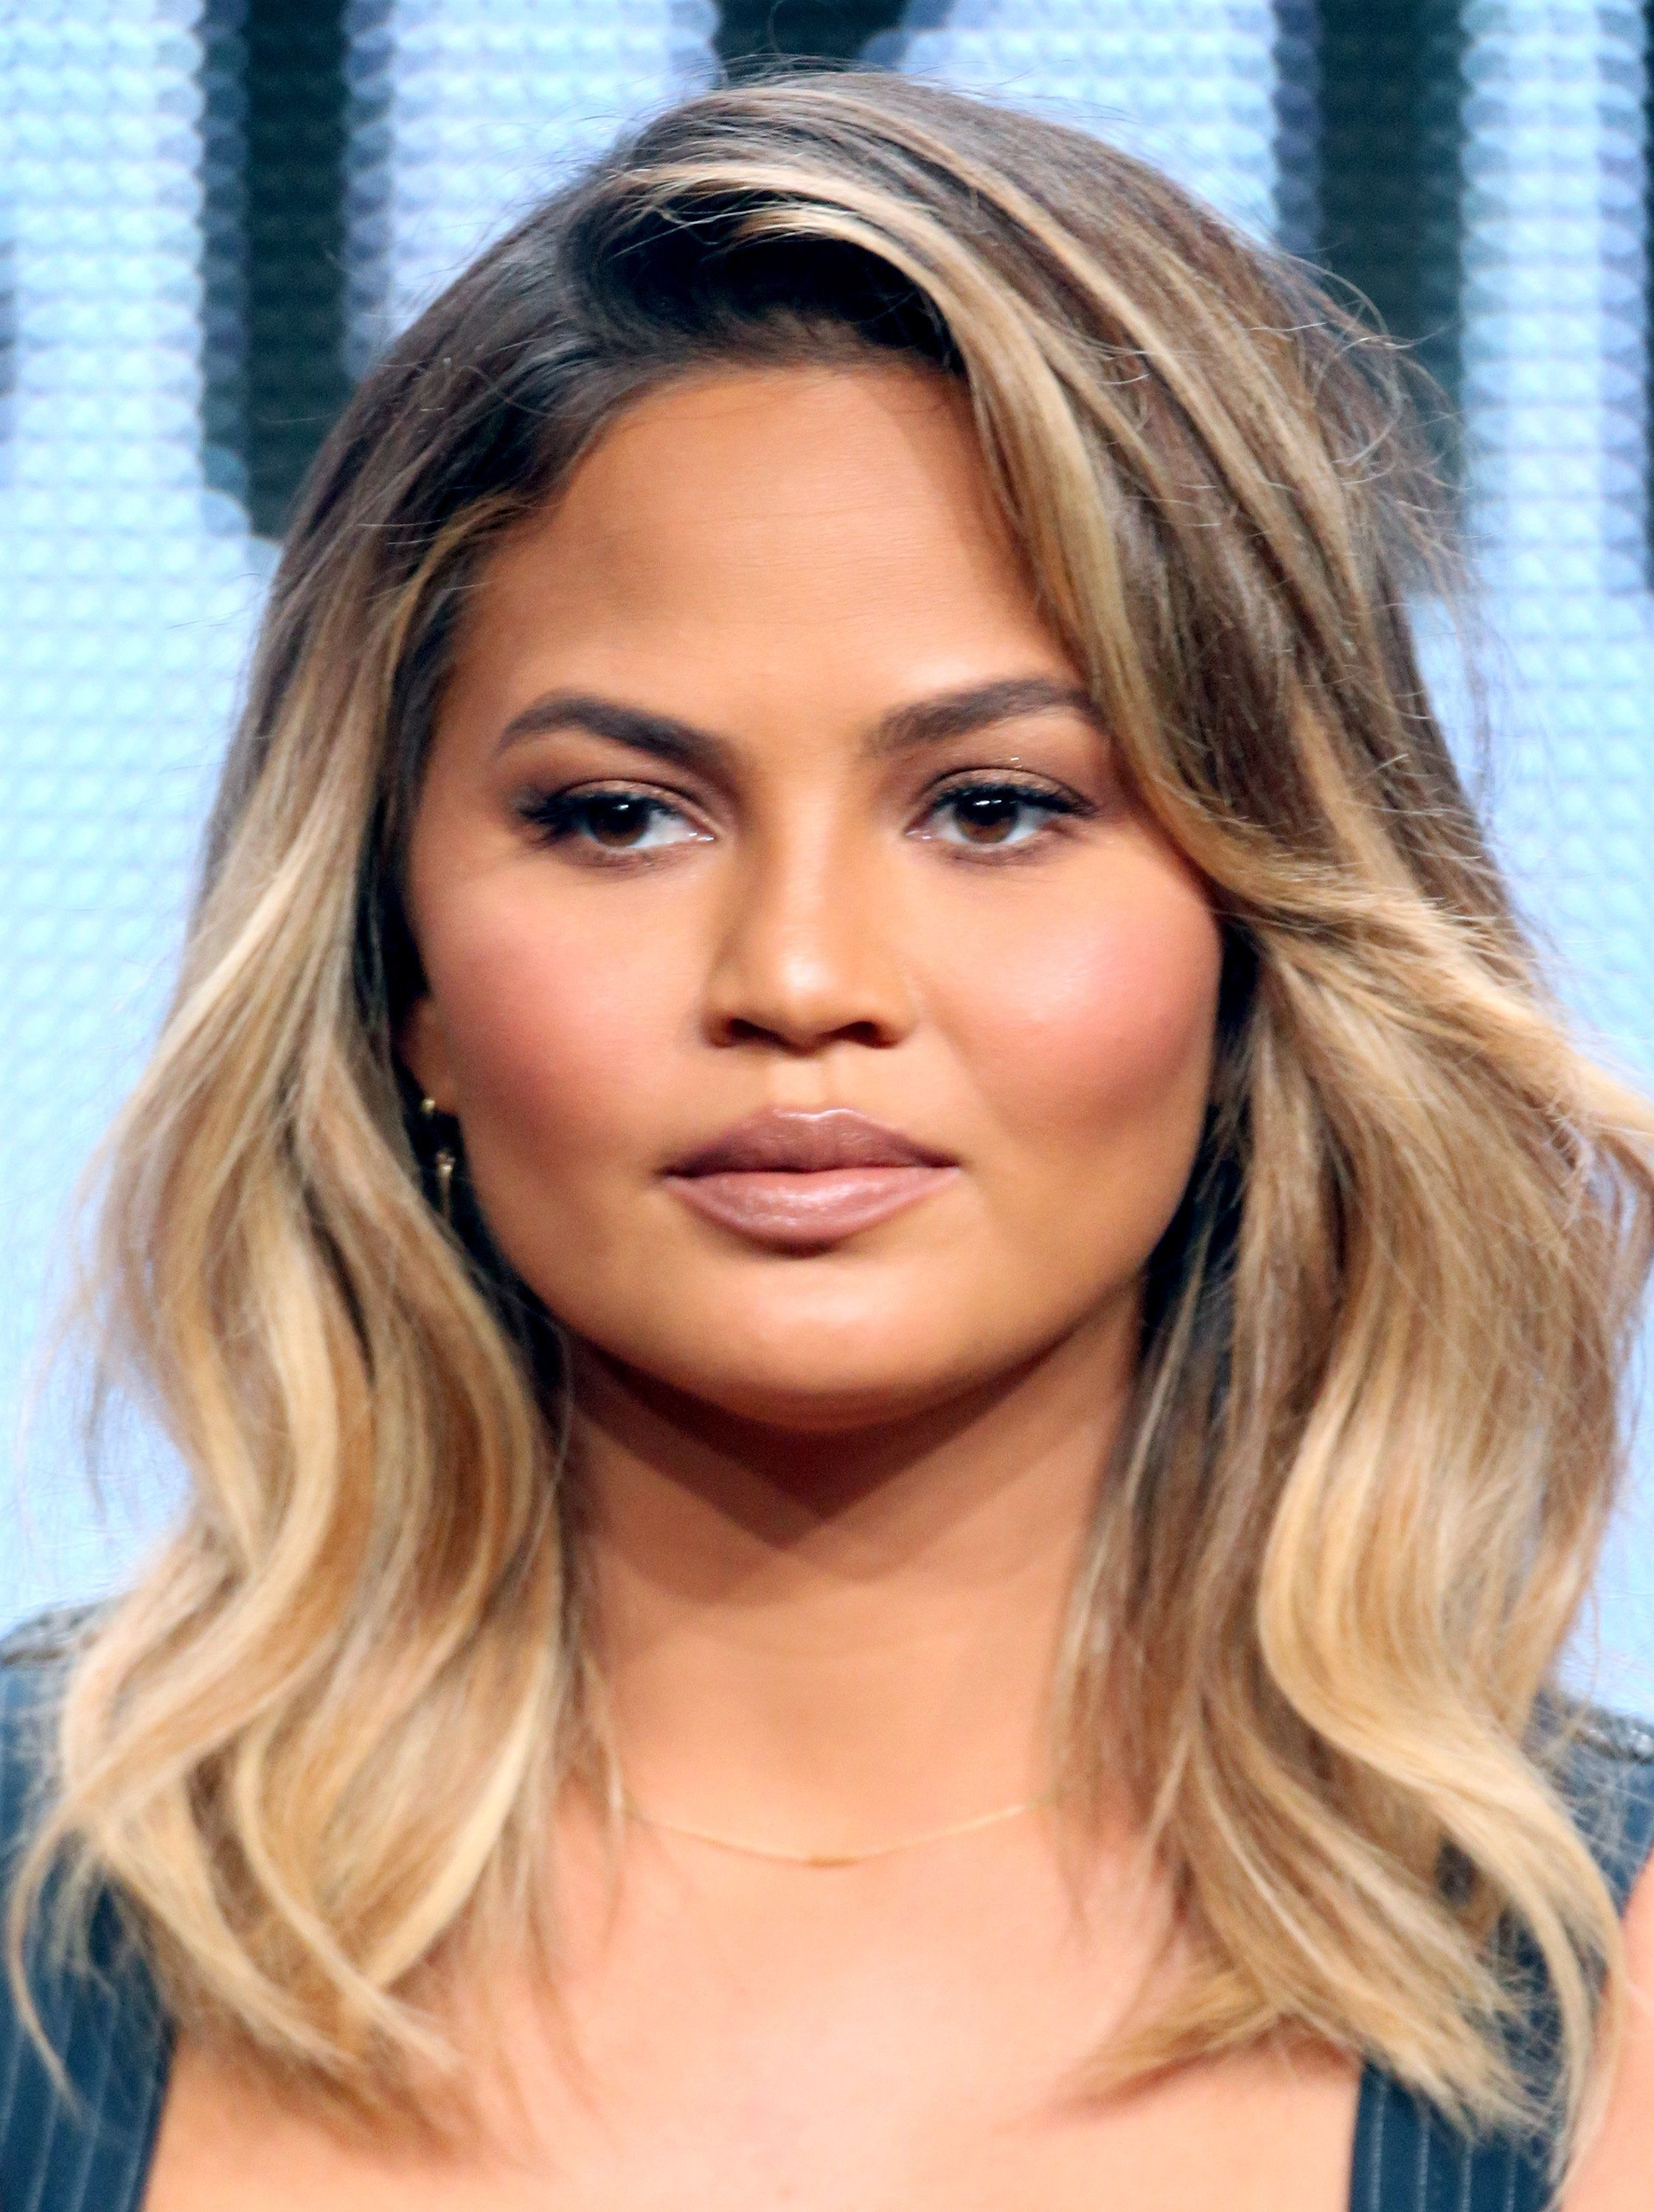 BEVERLY HILLS, CA - AUGUST 04:  Model Chrissy Teigen speaks onstage during the 'The FAB Life' panel discussion at the ABC Entertainment portion of the 2015 Summer TCA Tour at The Beverly Hilton Hotel on August 4, 2015 in Beverly Hills, California.  (Photo by Frederick M. Brown/Getty Images)